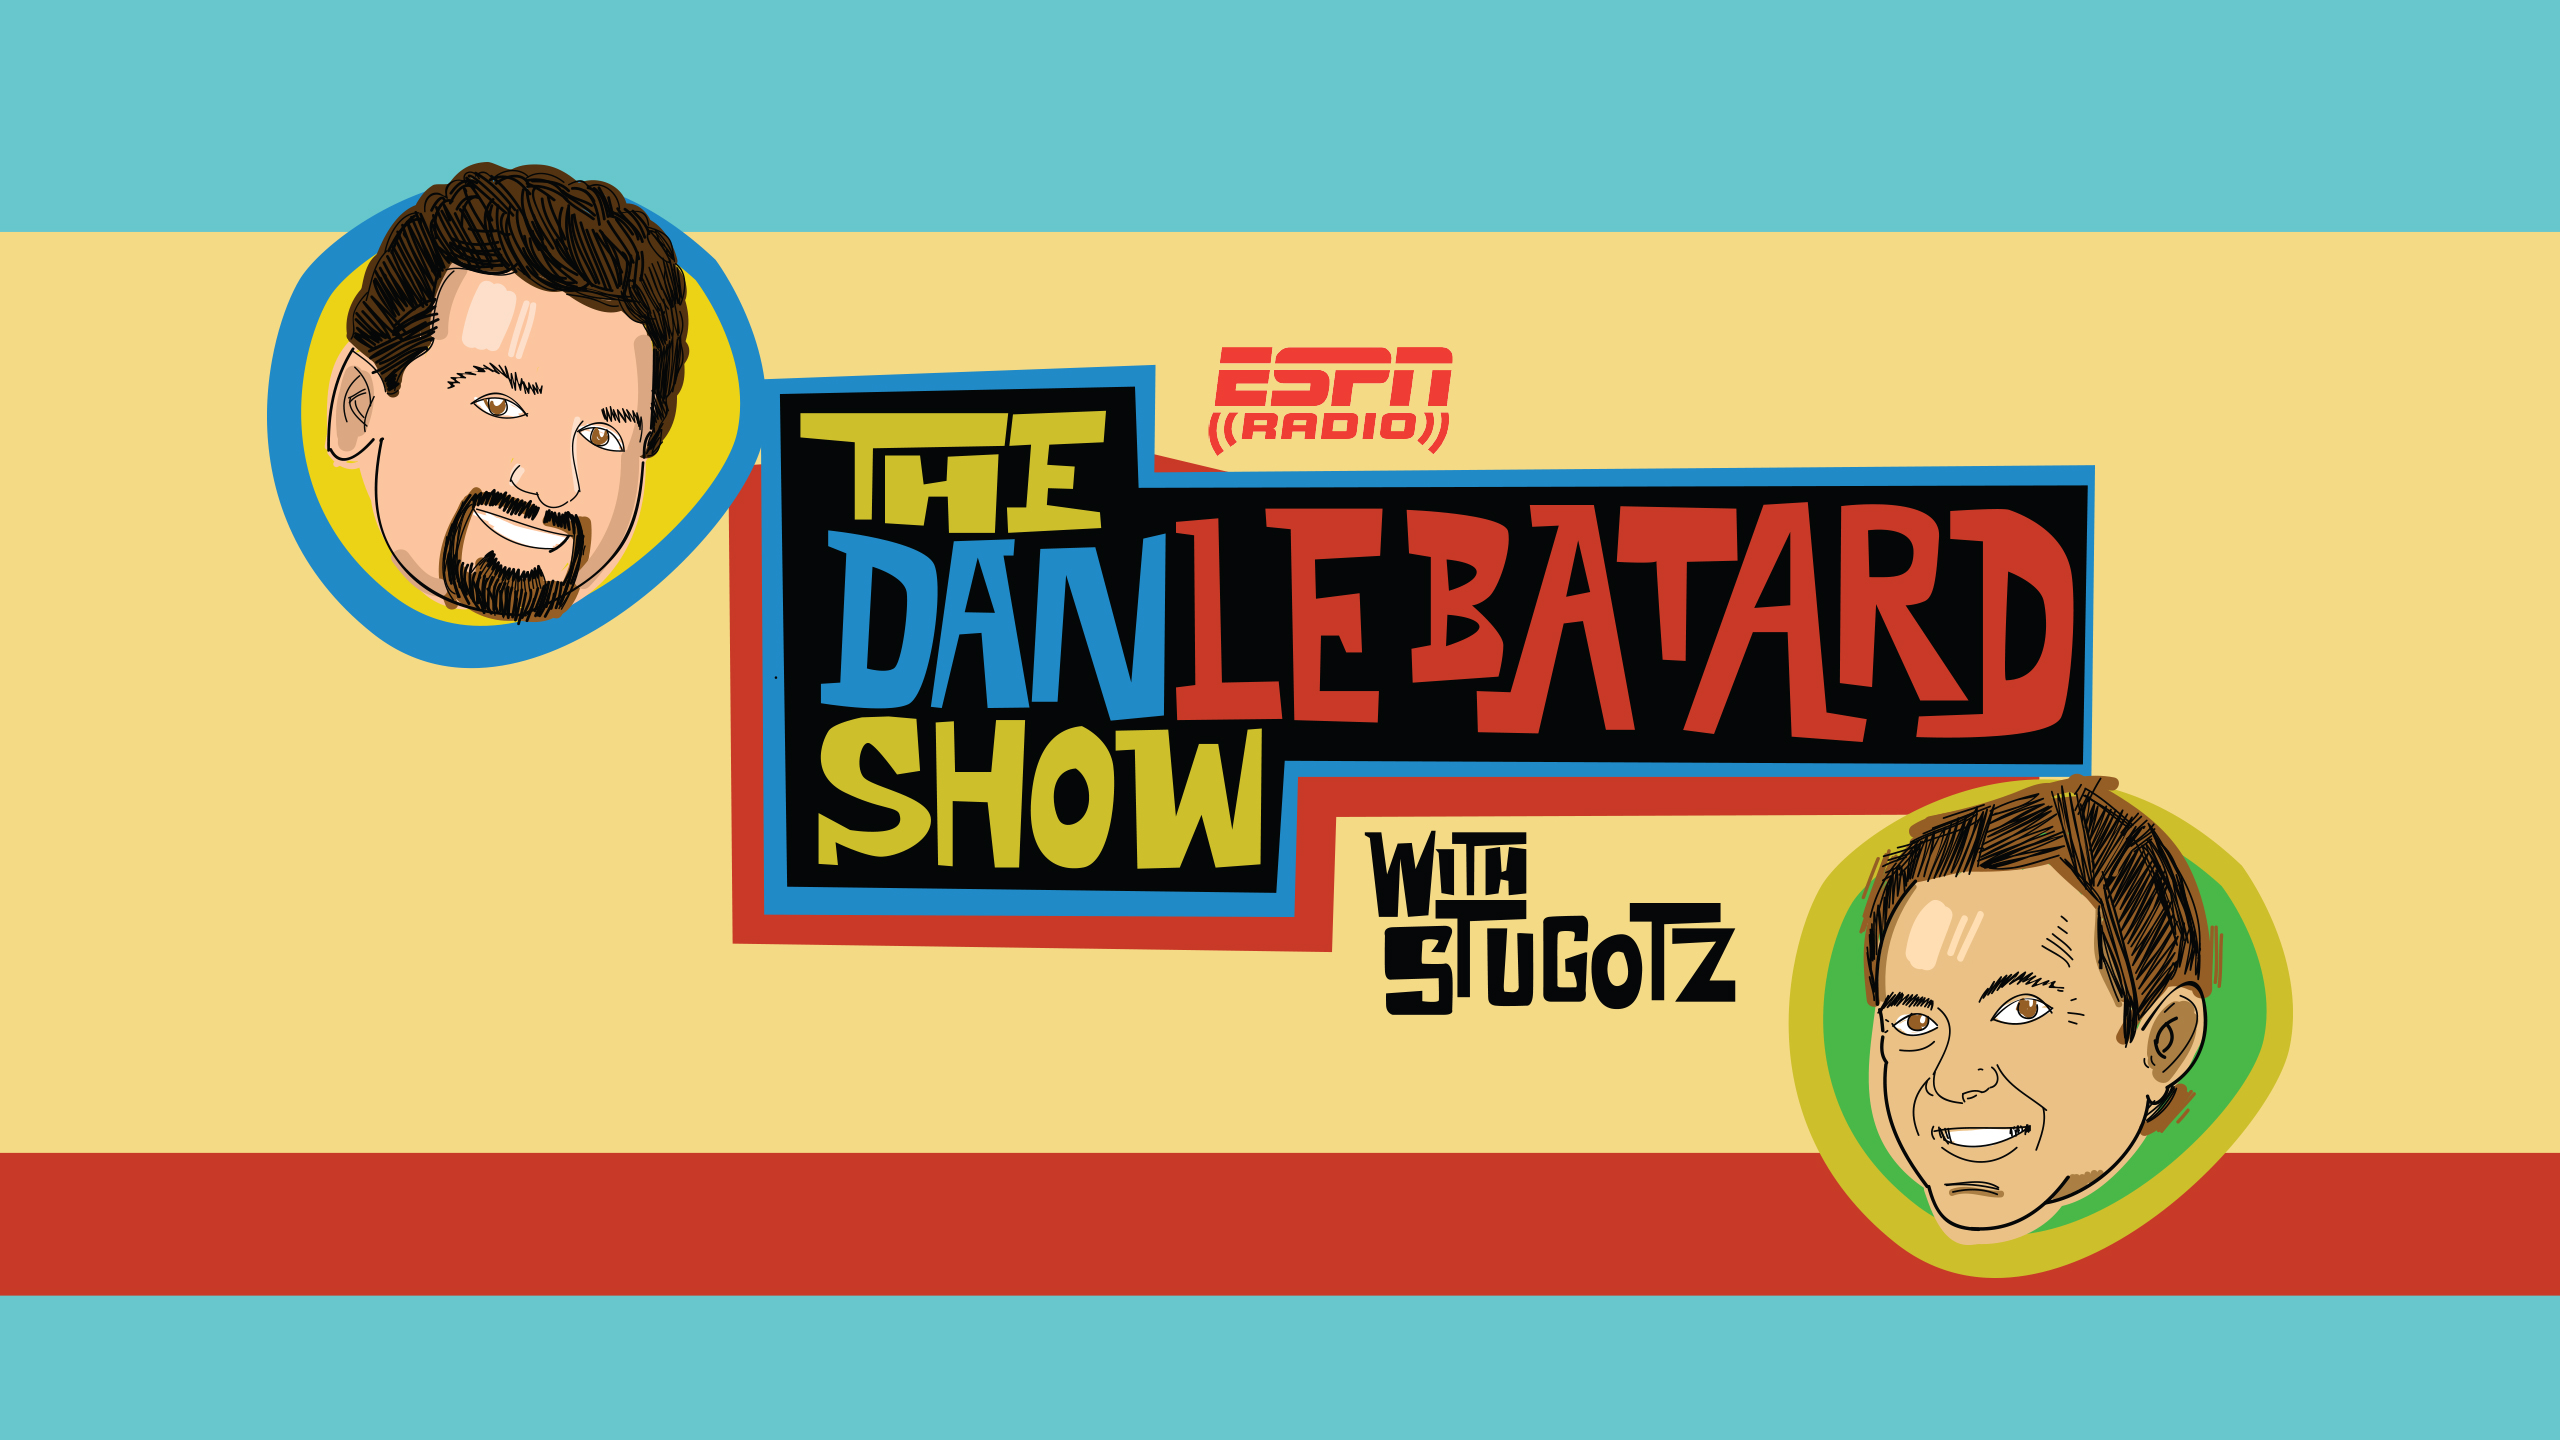 Mon, 10/15 - The Dan Le Batard Show with Stugotz Presented by Progressive